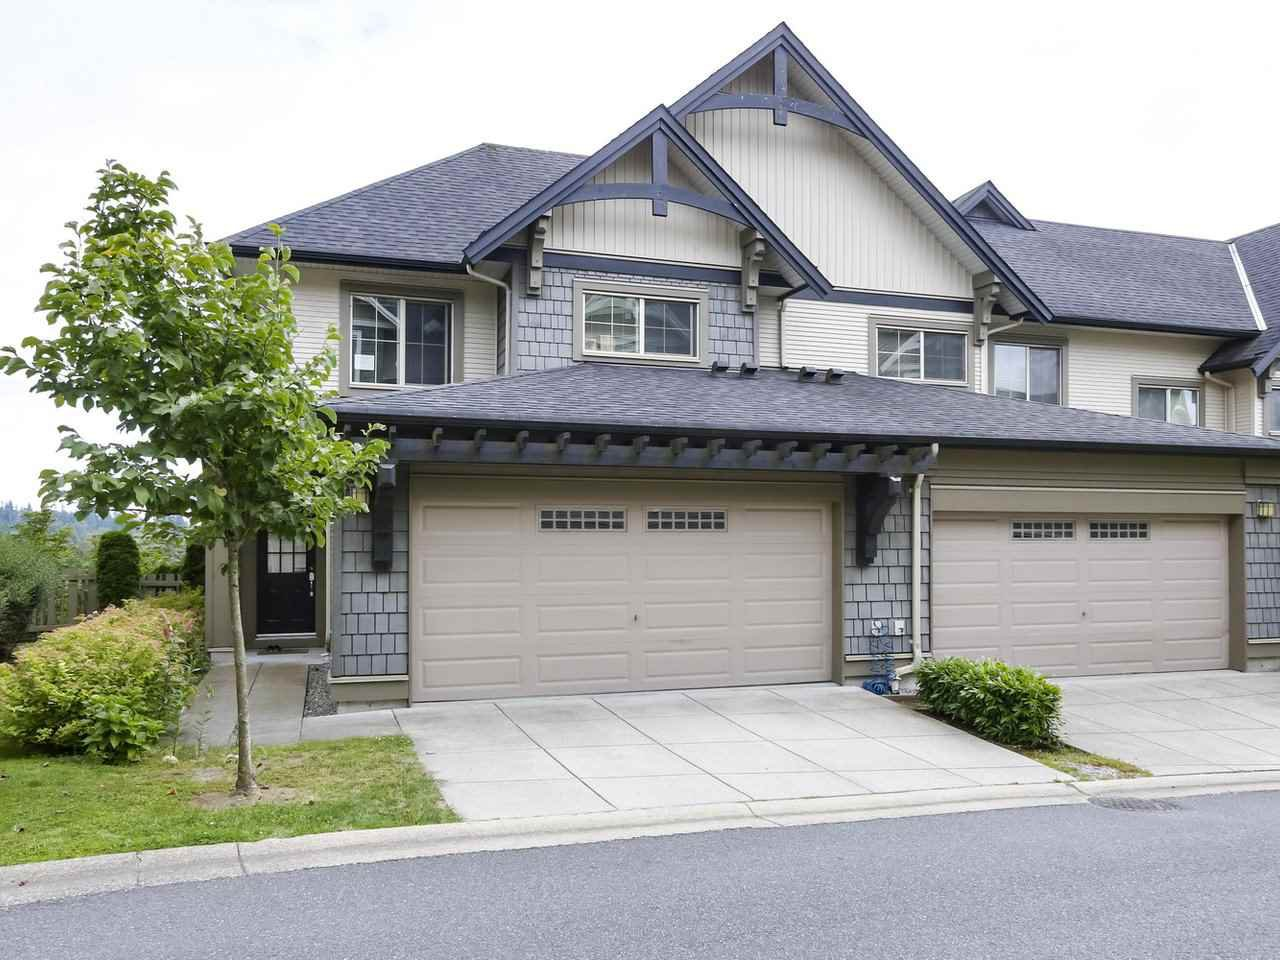 """Main Photo: 193 3105 DAYANEE SPRINGS Boulevard in Coquitlam: Westwood Plateau Townhouse for sale in """"WhiteTail Lane at Dayanee Springs"""" : MLS®# R2496991"""